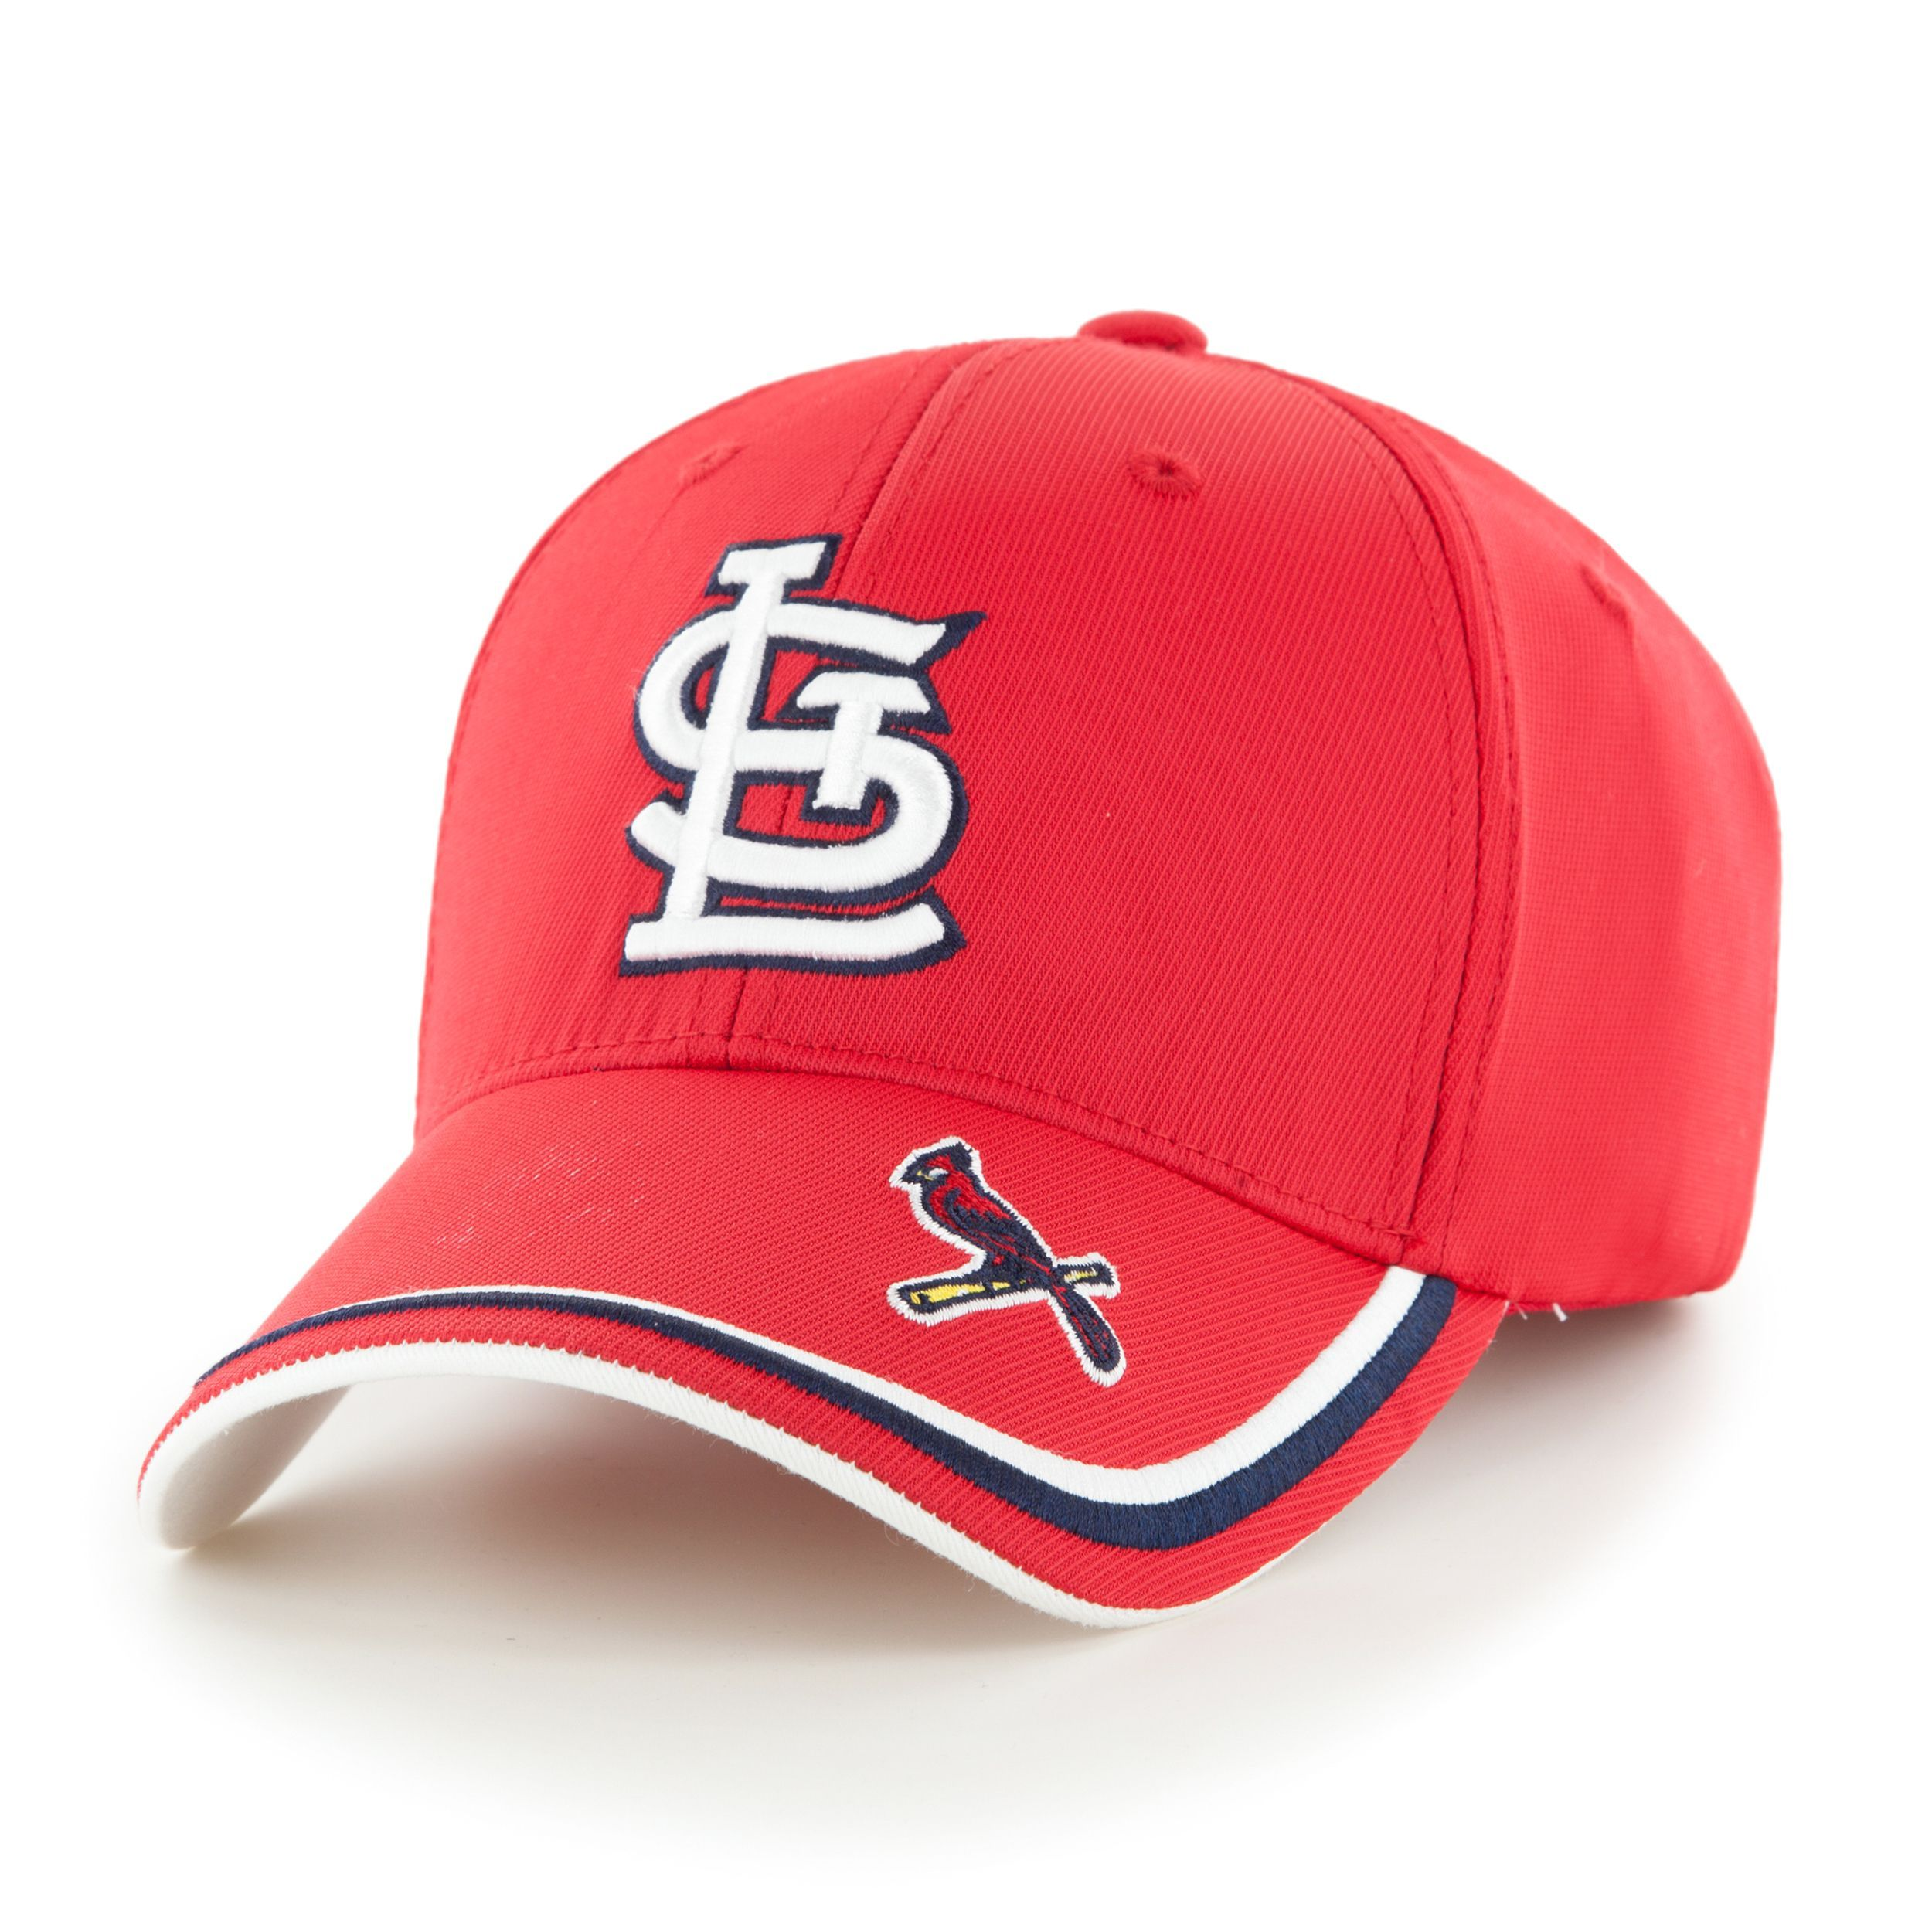 cheap for discount f2aa7 f52f6 47 Brand St. Louis Cardinals MLB Forest (Green) Hook and Loop Hat (St. Louis  Cardinals), Size One Size Fits All (spandex)